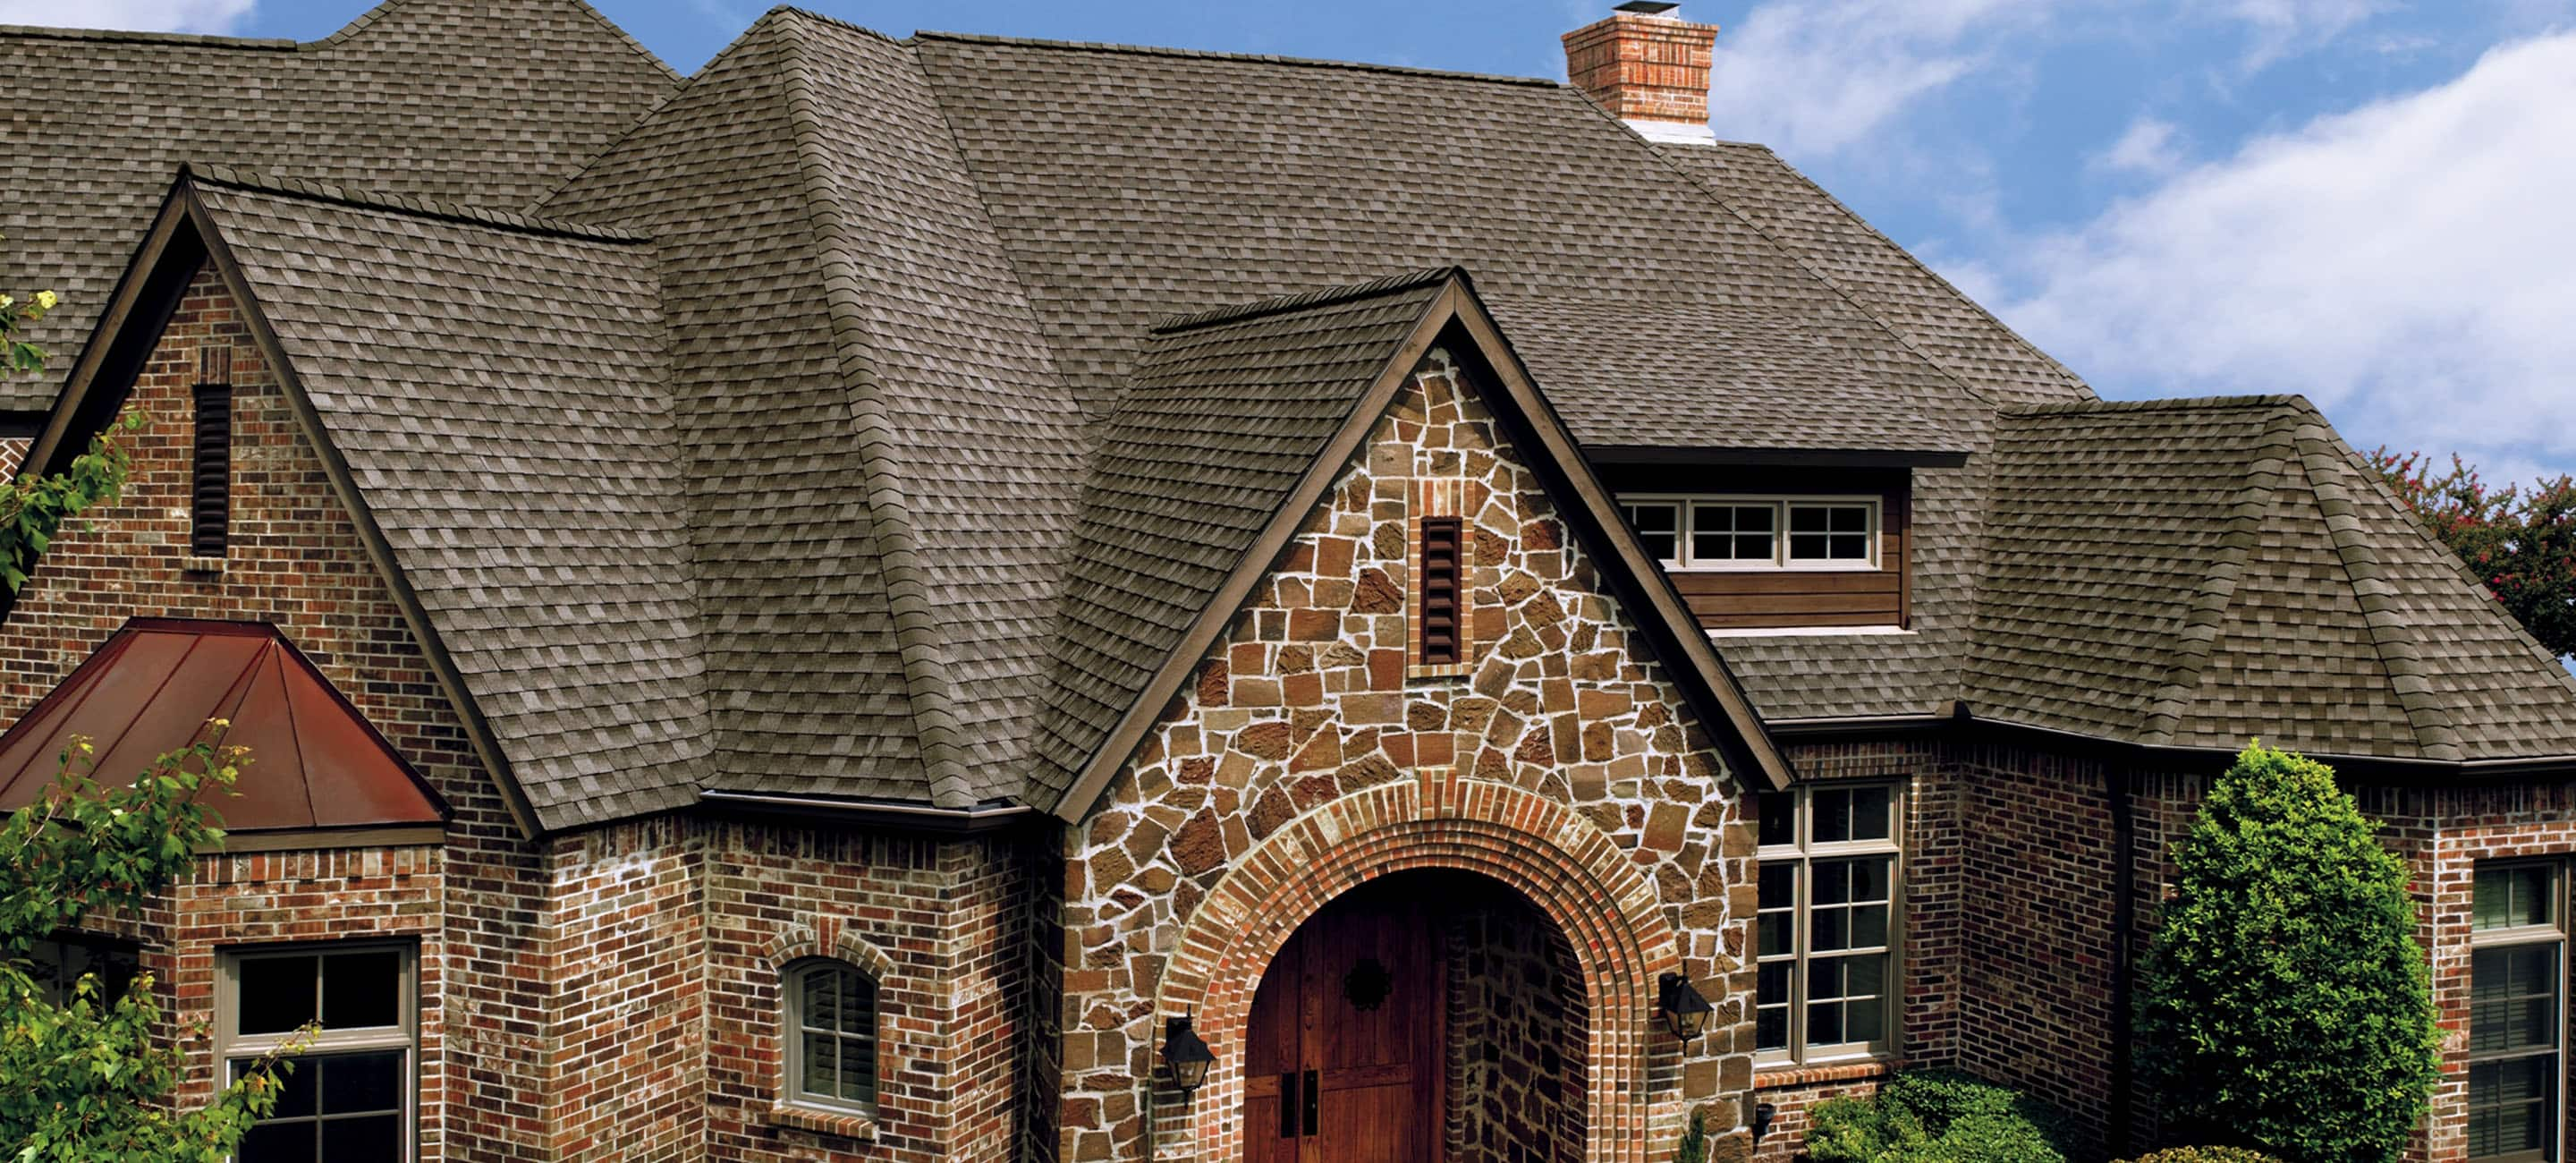 Gaf Timberline Hd Roofing Shingles